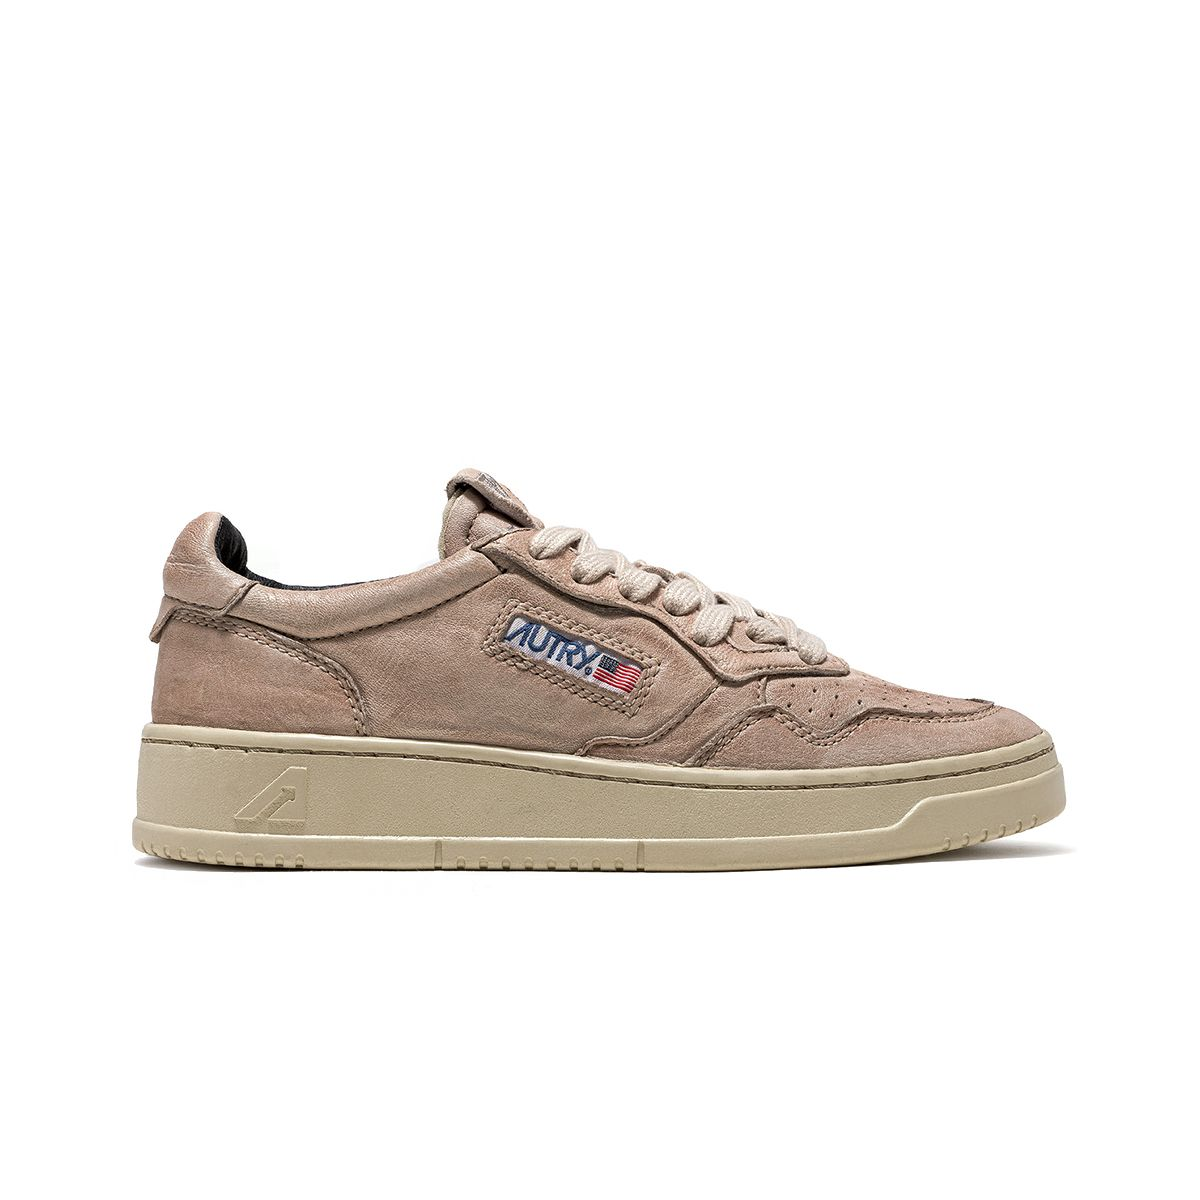 autry low donna sneakers AULWGG02